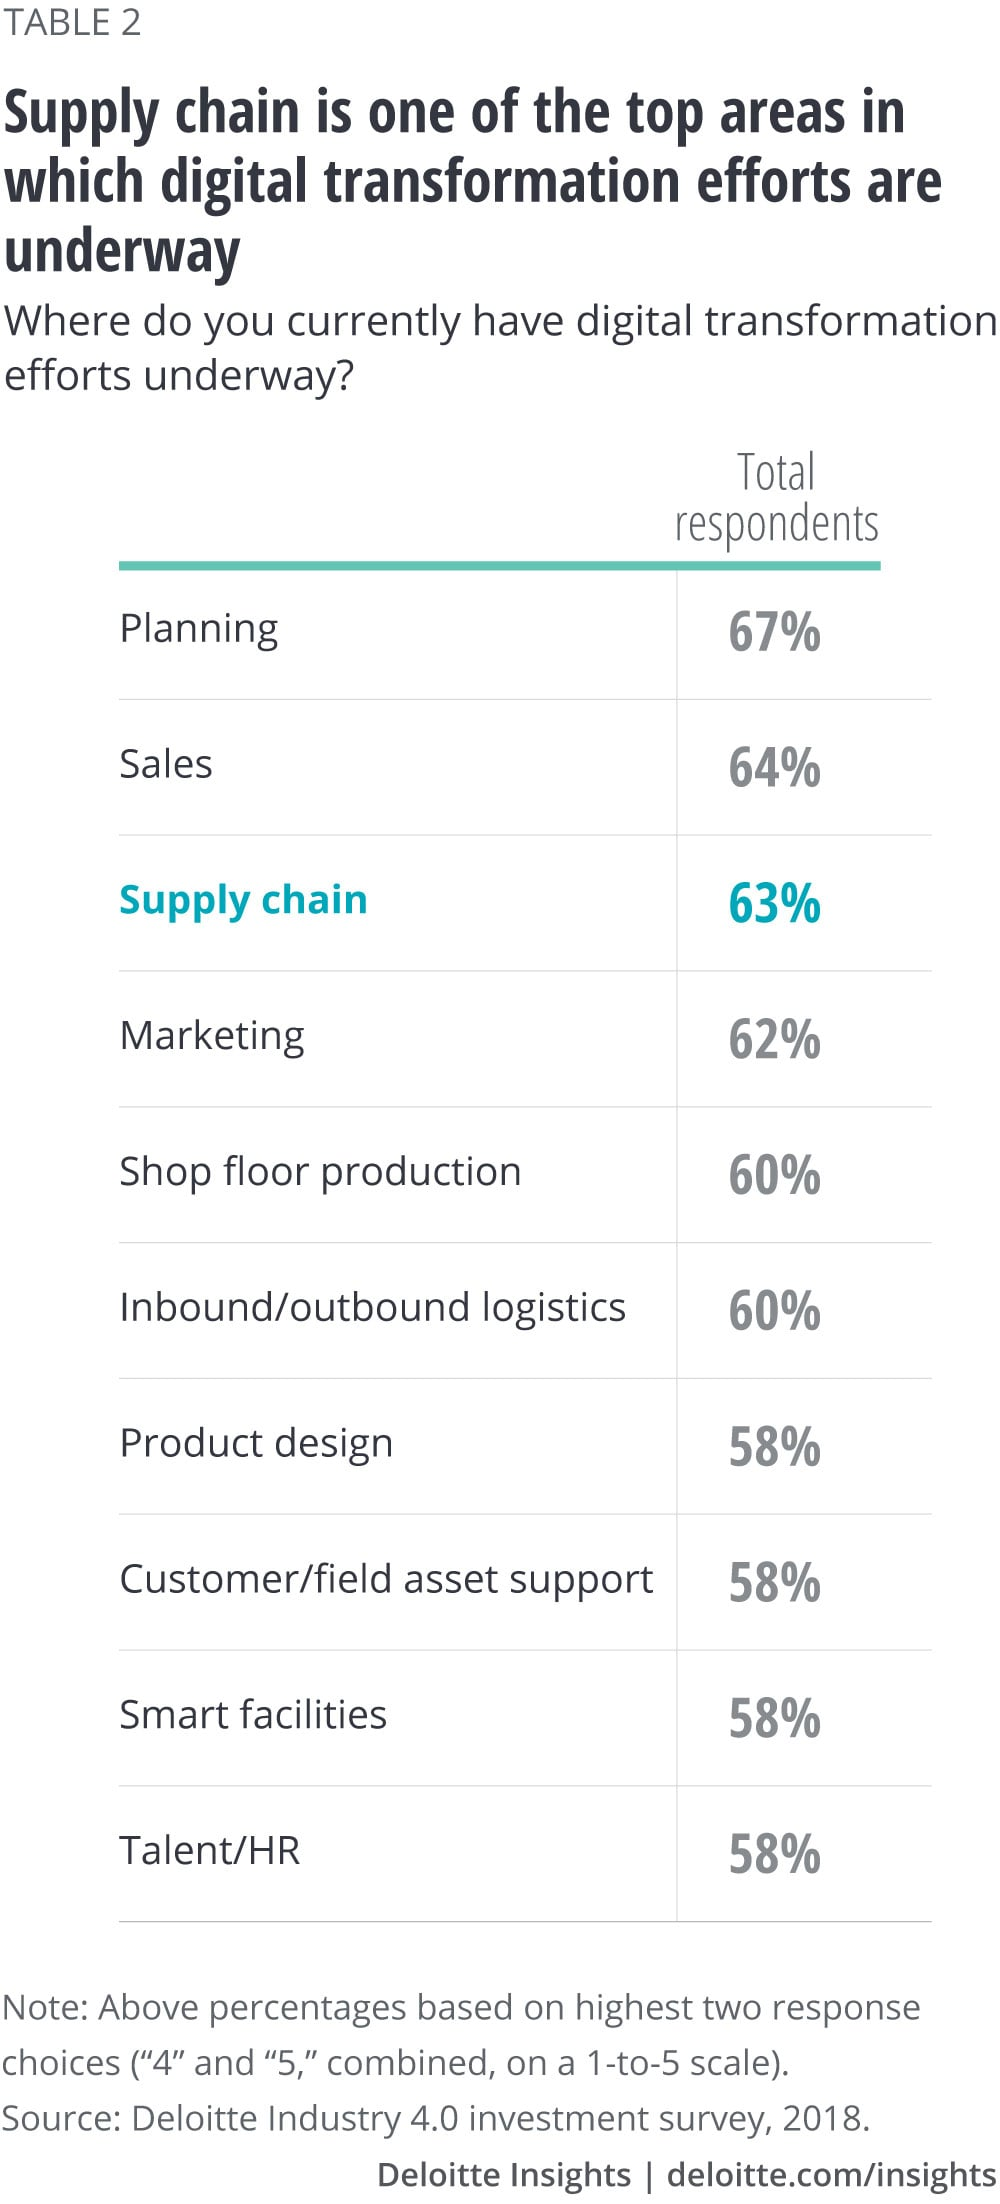 Supply chain is one of the top areas in which digital transformation efforts are underway